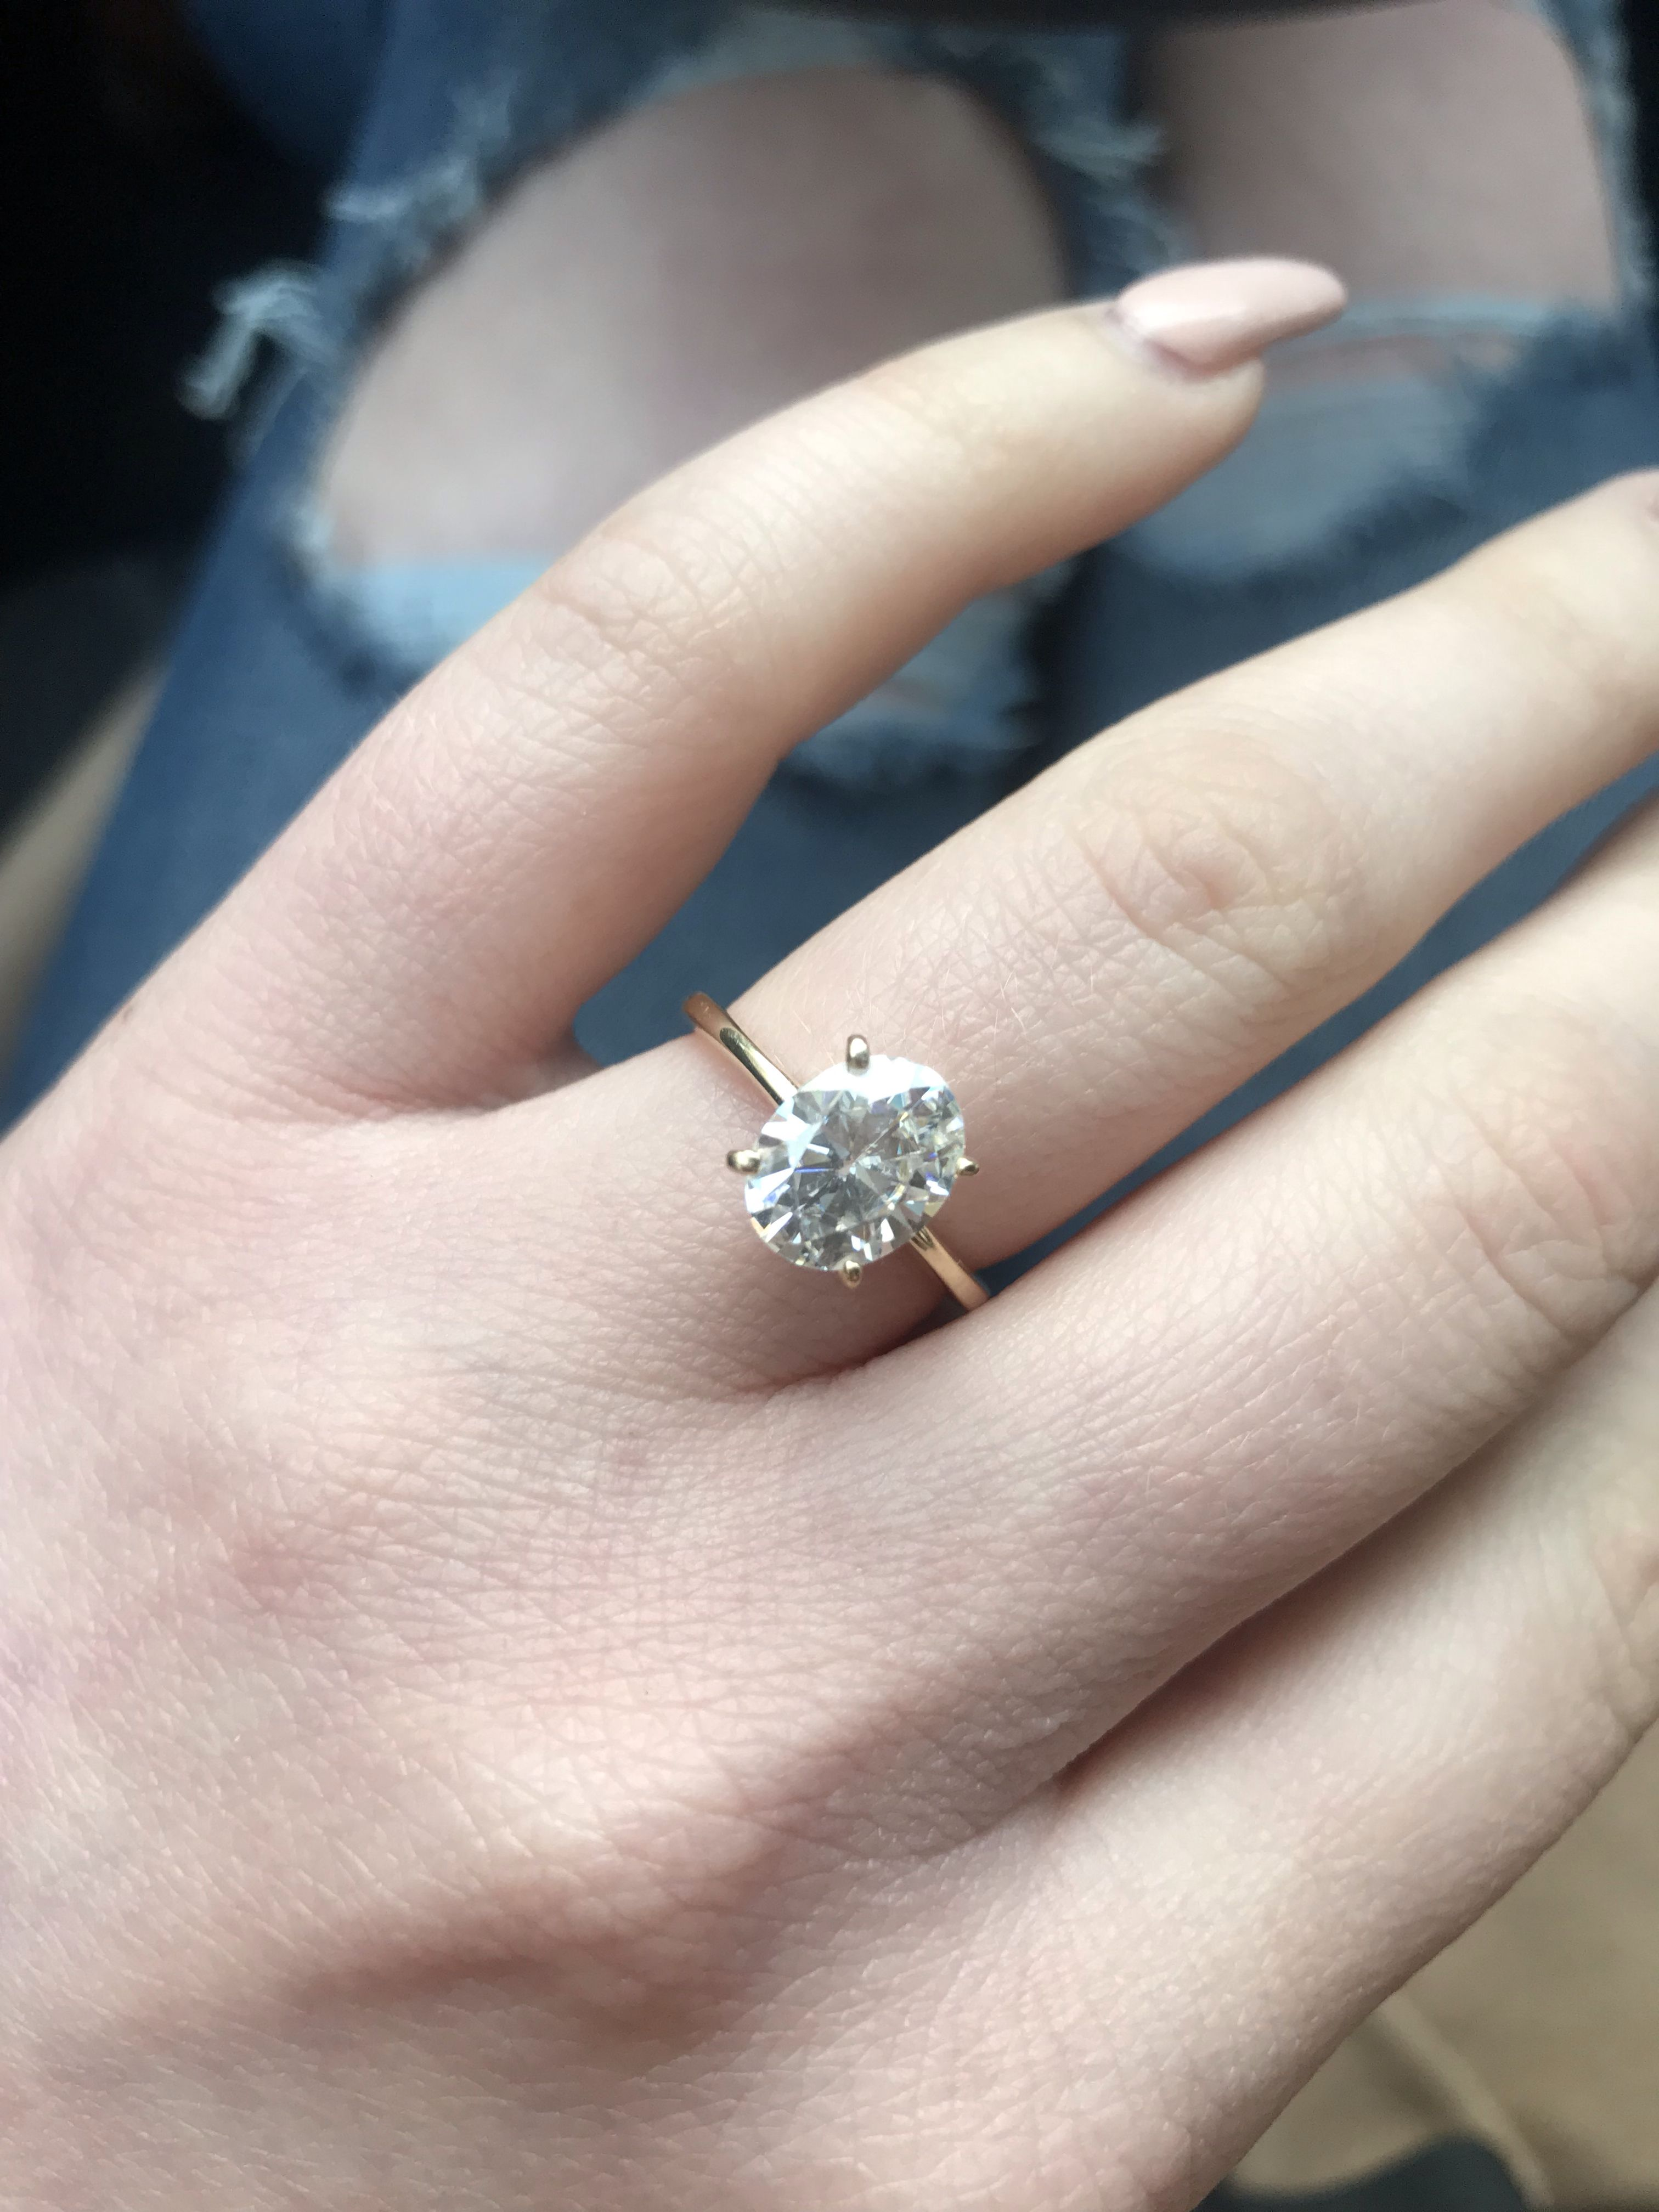 My Oval Solitaire 2 1 Carat Engagement Ring 1 Carat Engagement Rings Gold Oval Engagement Ring Engagement Rings Oval